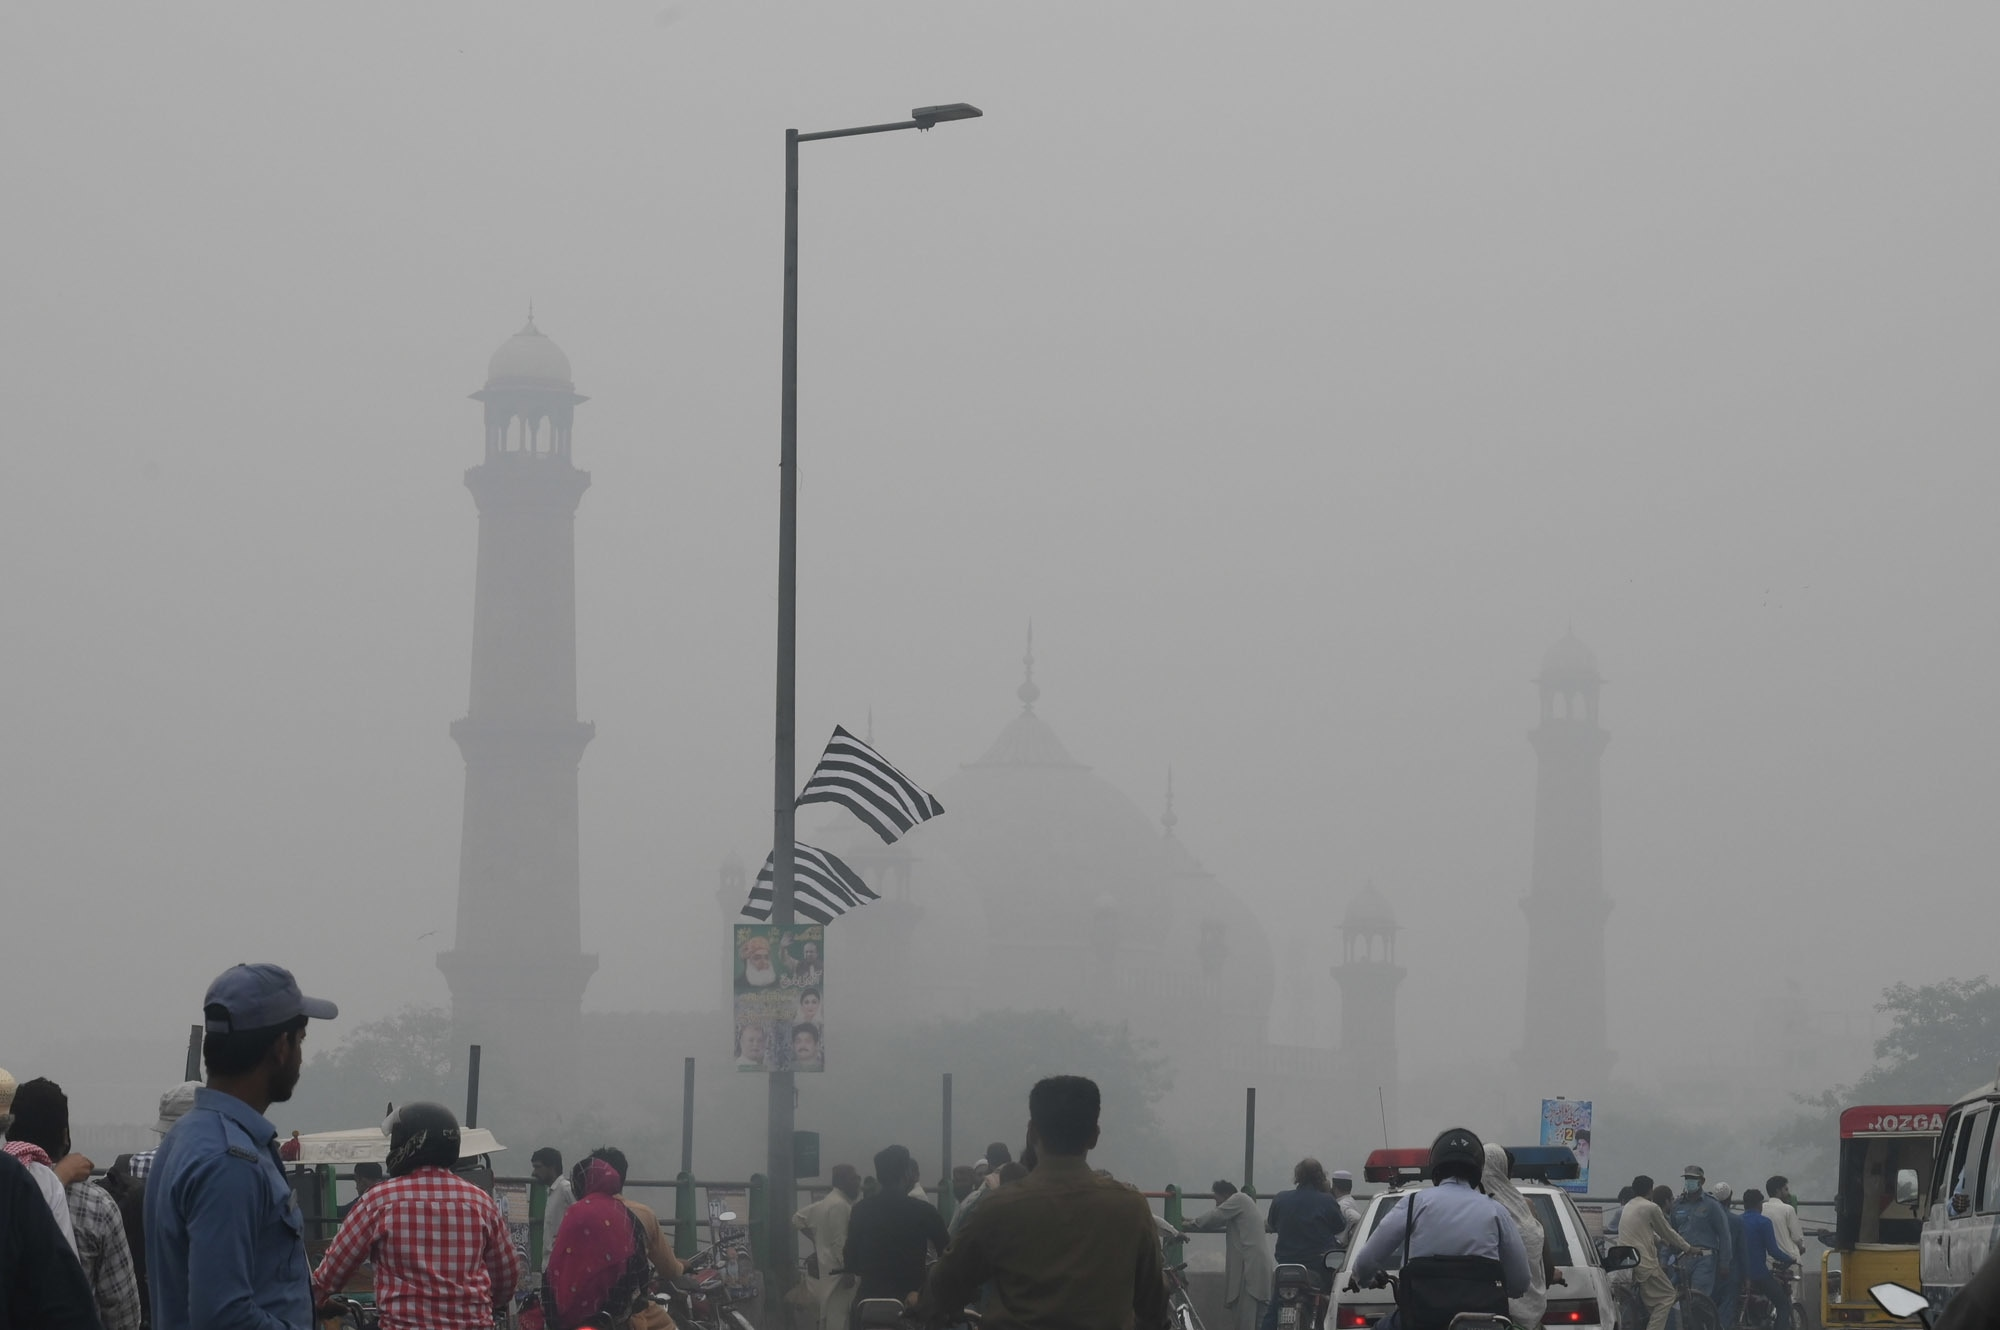 Lahore's famous Badshahi Mosque is obscured from view because of smog | M. Arif/White Star